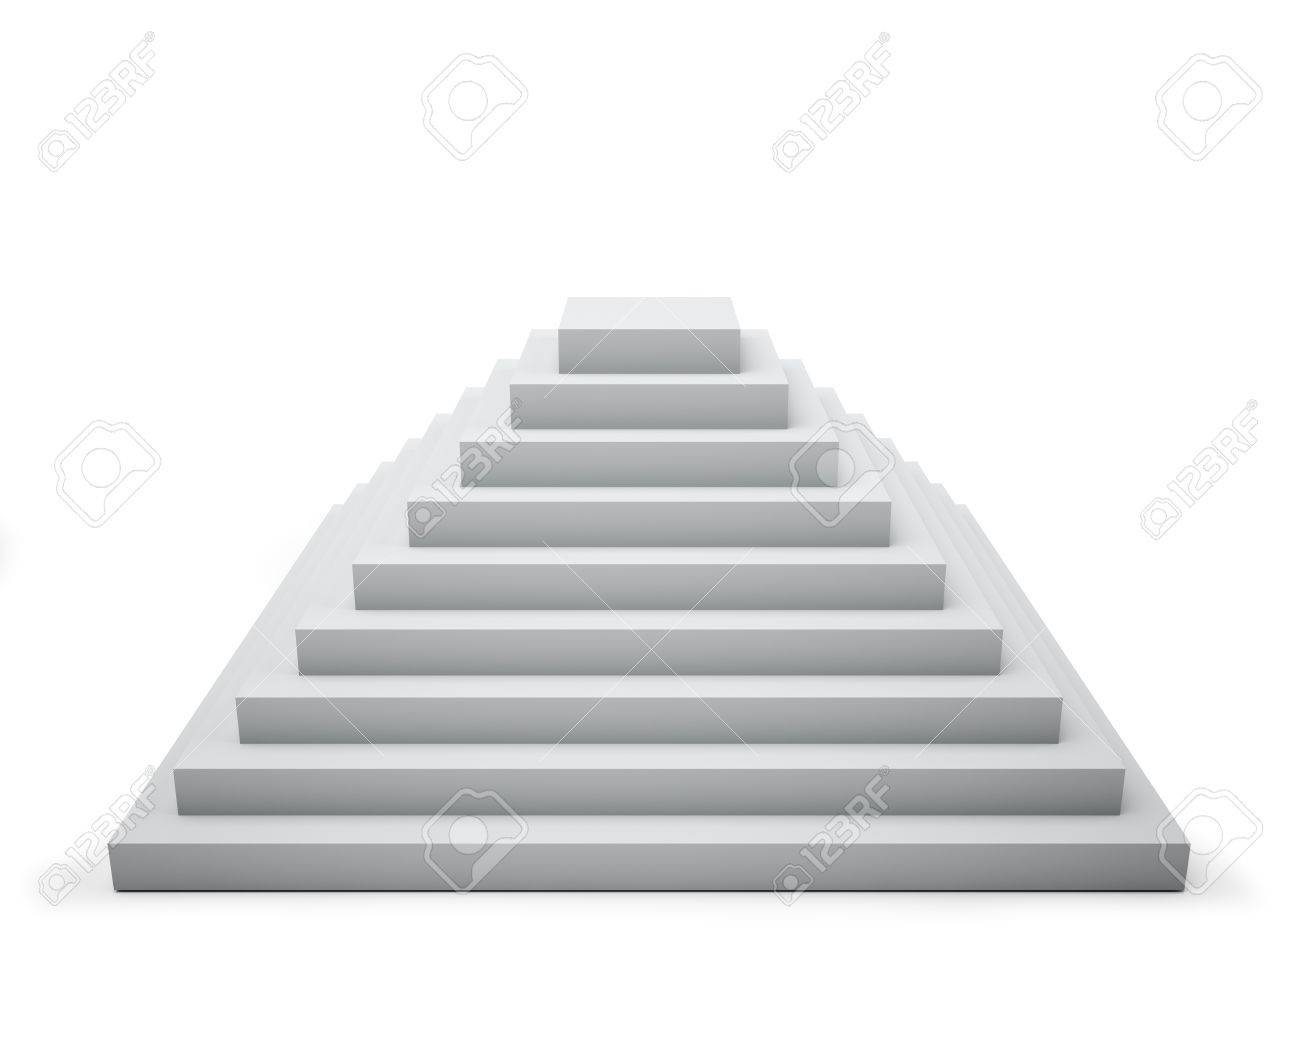 hight resolution of 3d white step pyramid isolated on white background stock photo 19527454